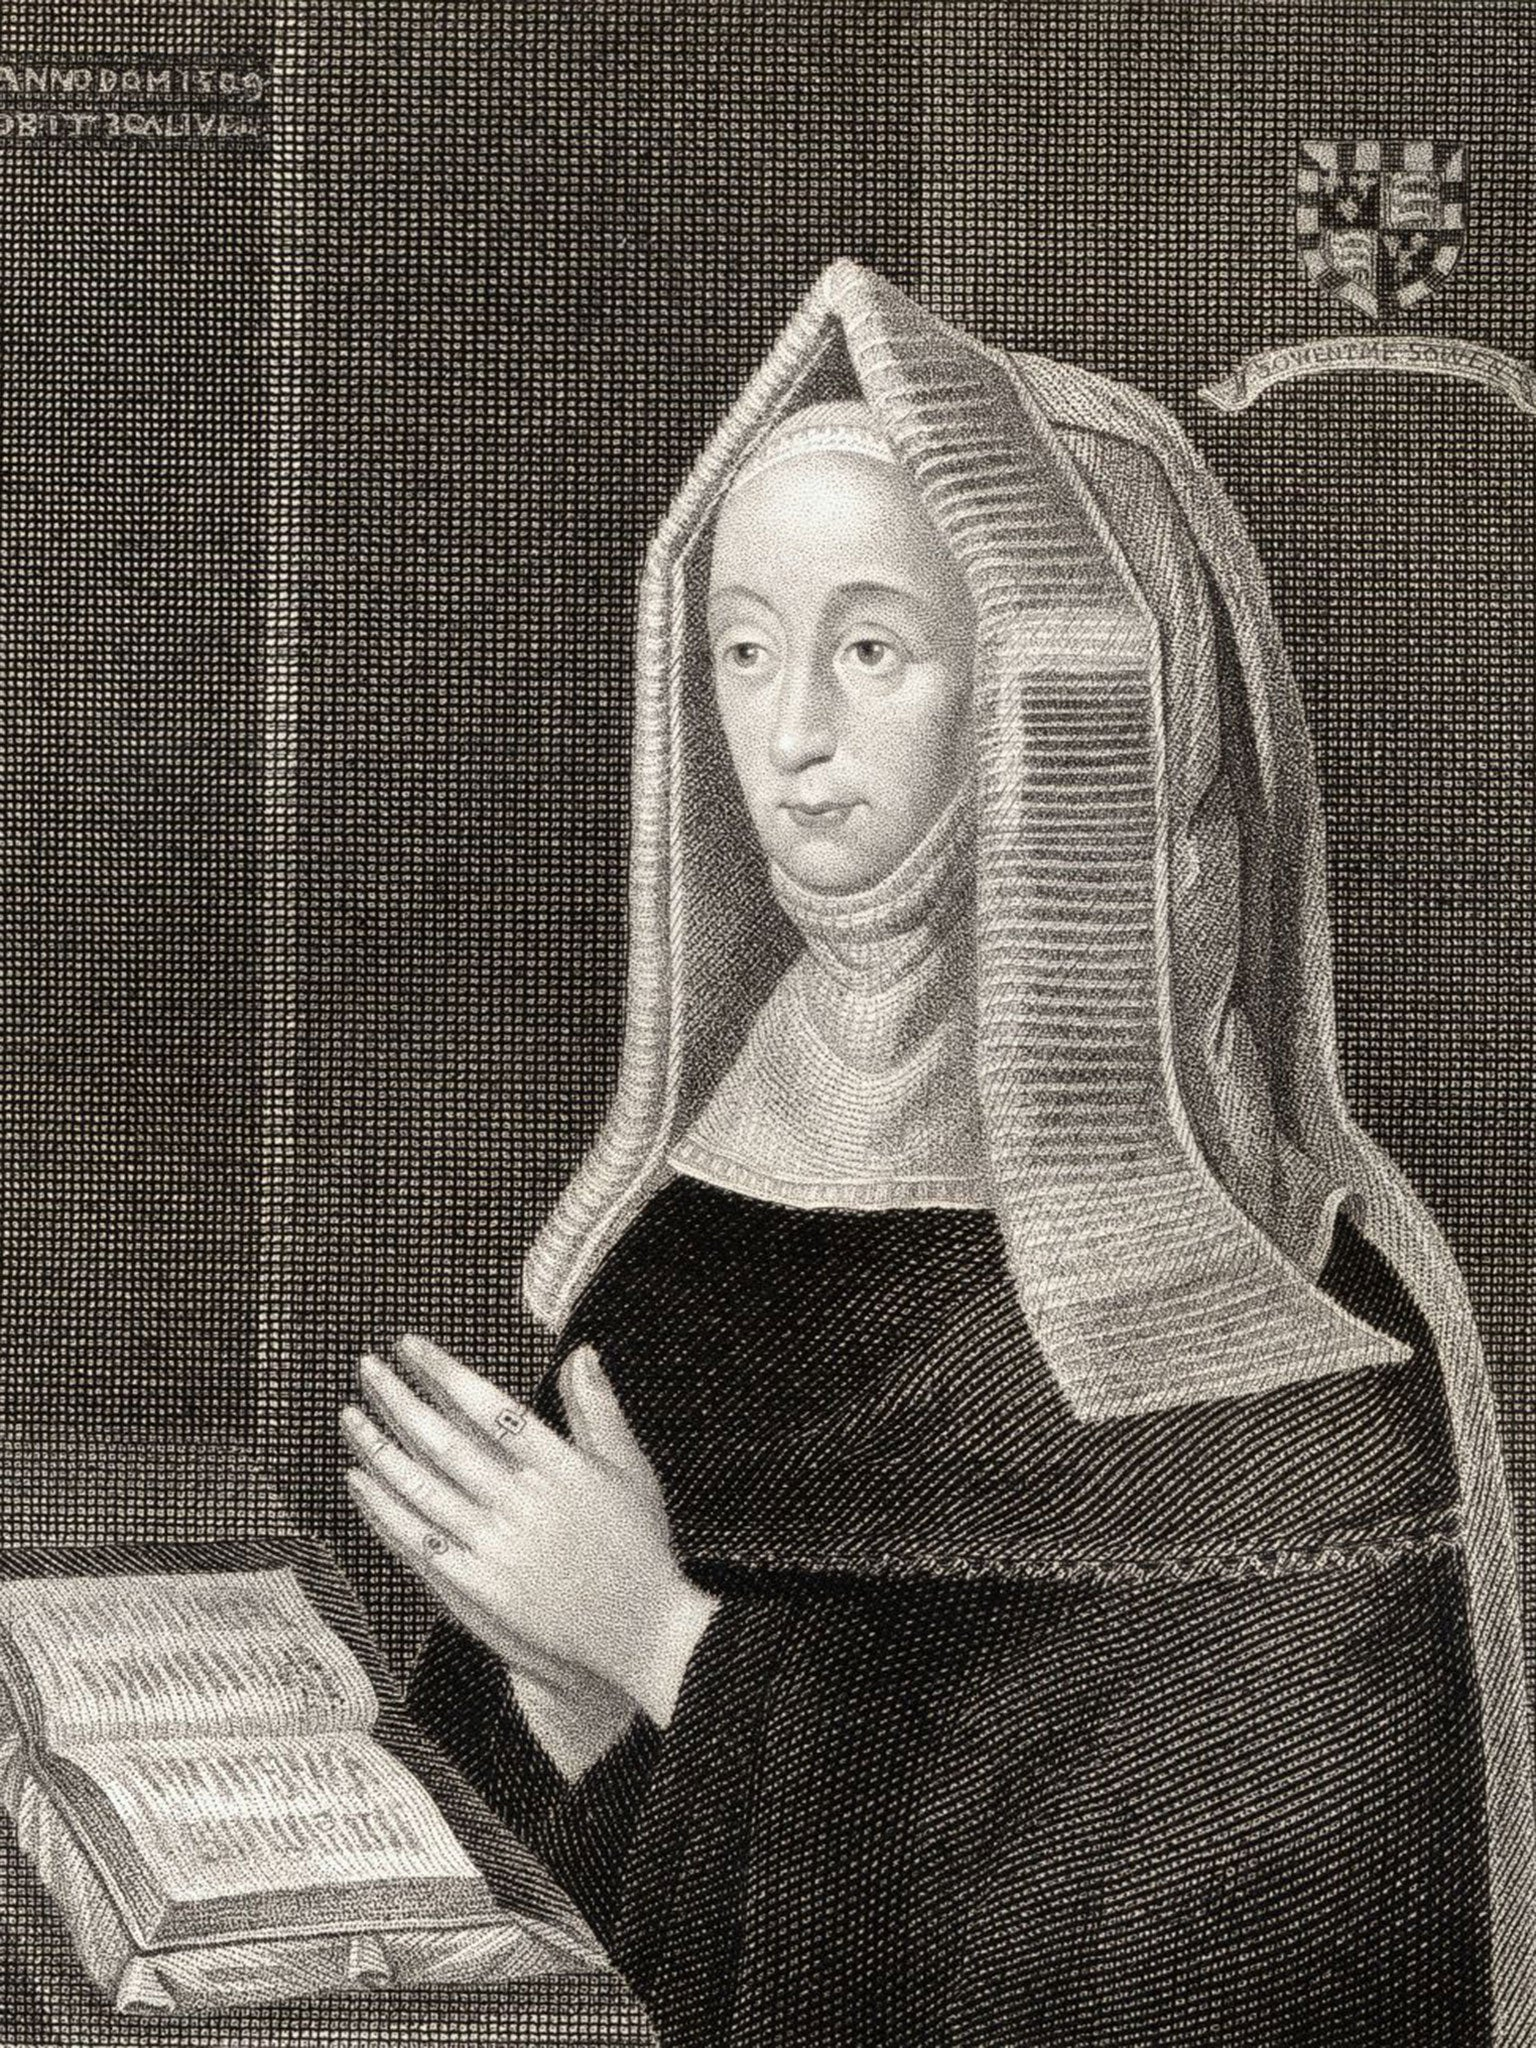 Real-life Game of Thrones: Henry VII's mother Margaret